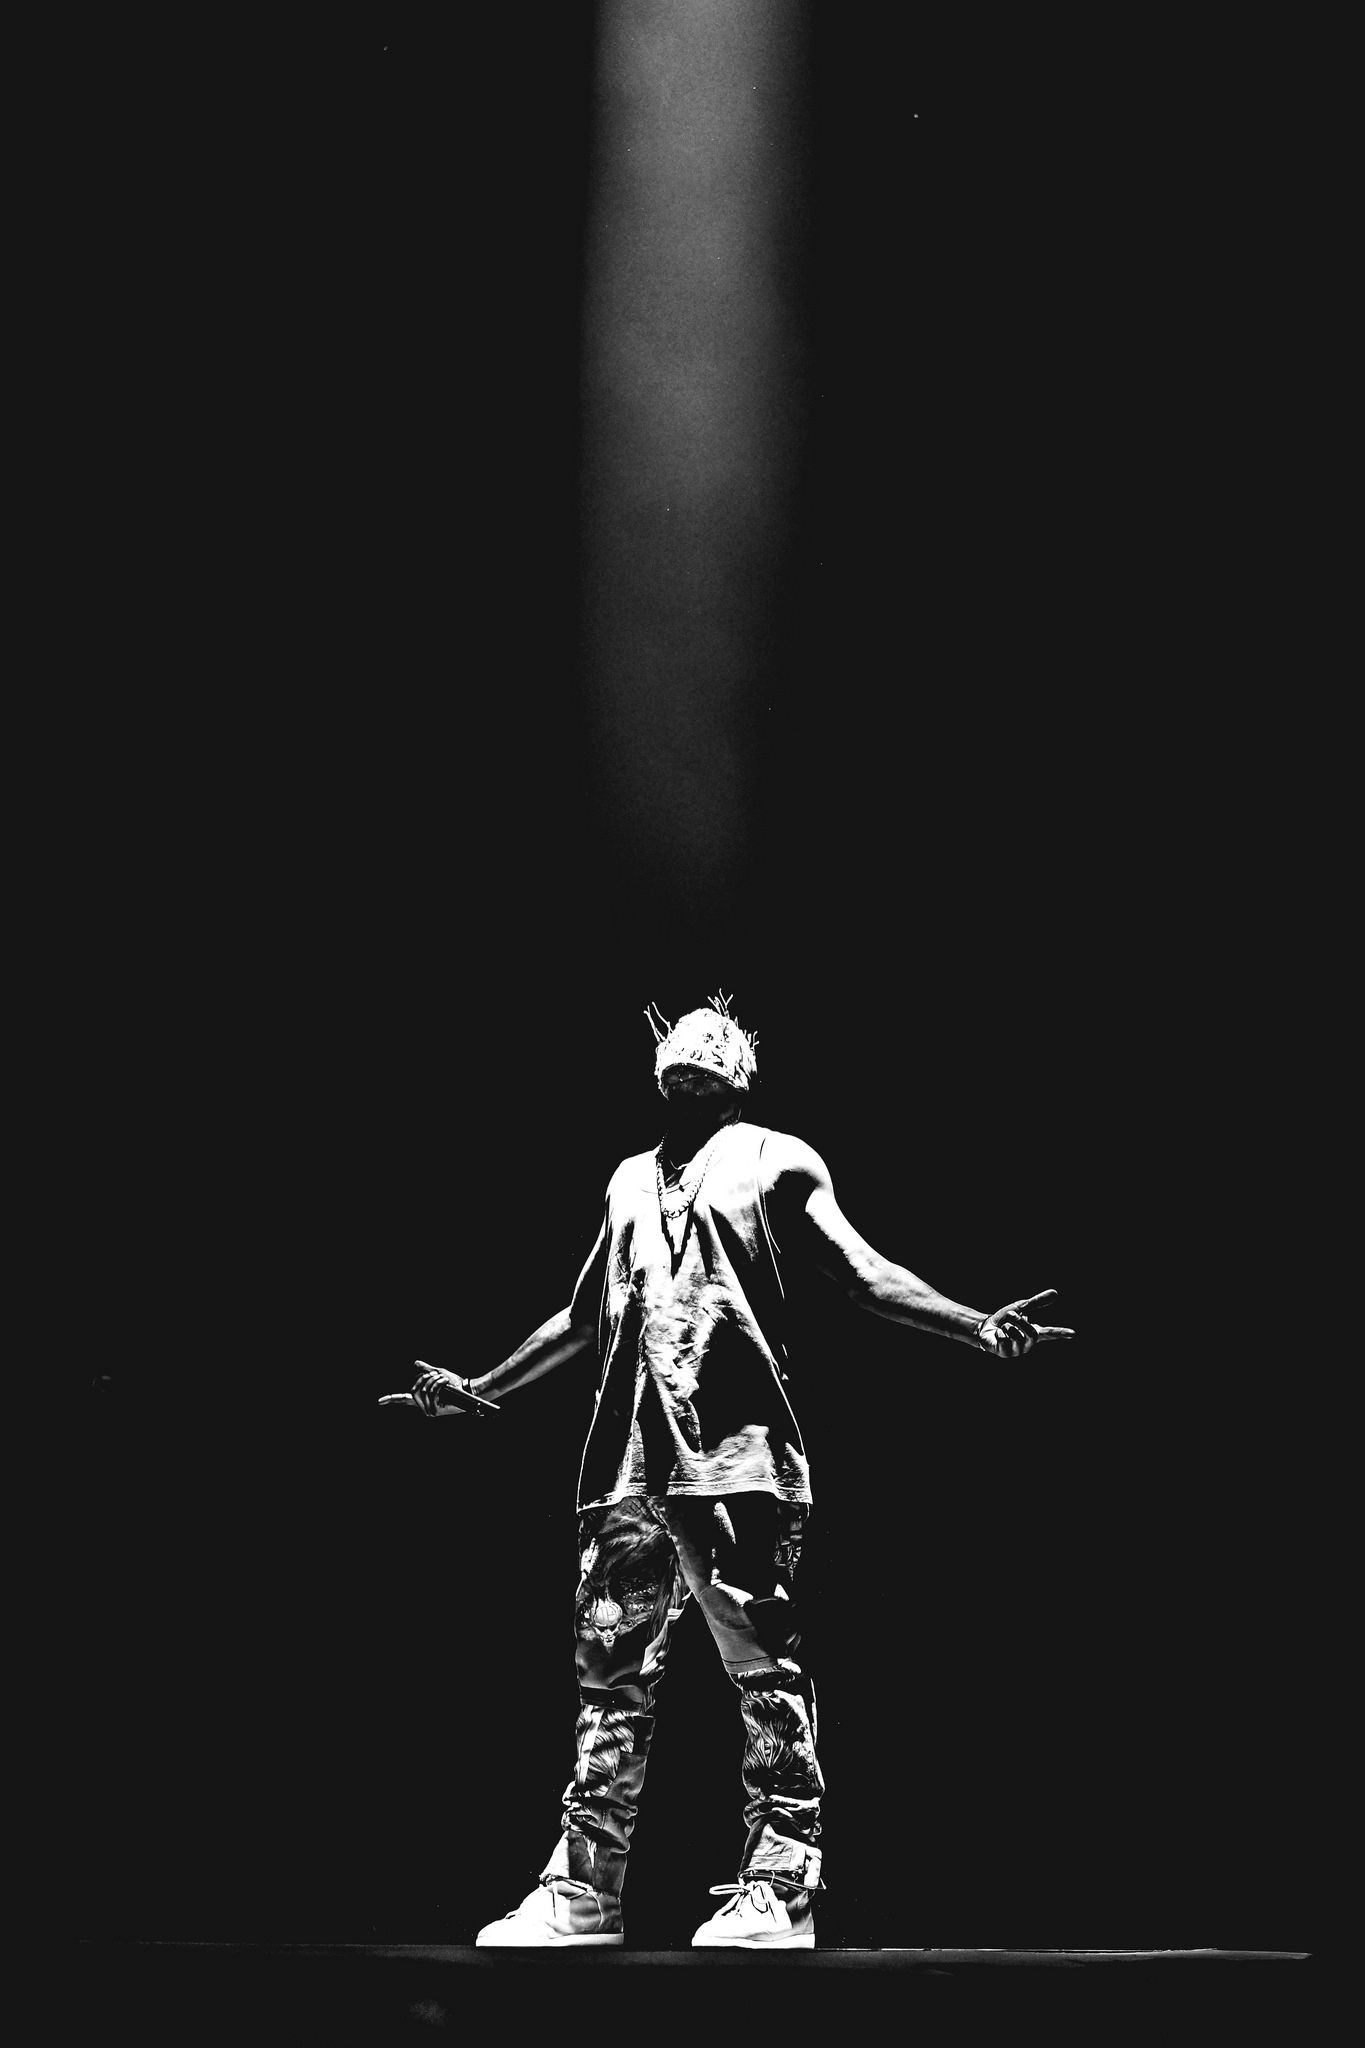 Kanye west iphone wallpaper tumblr - Search Results For Yeezus Tour Iphone Wallpaper Adorable Wallpapers